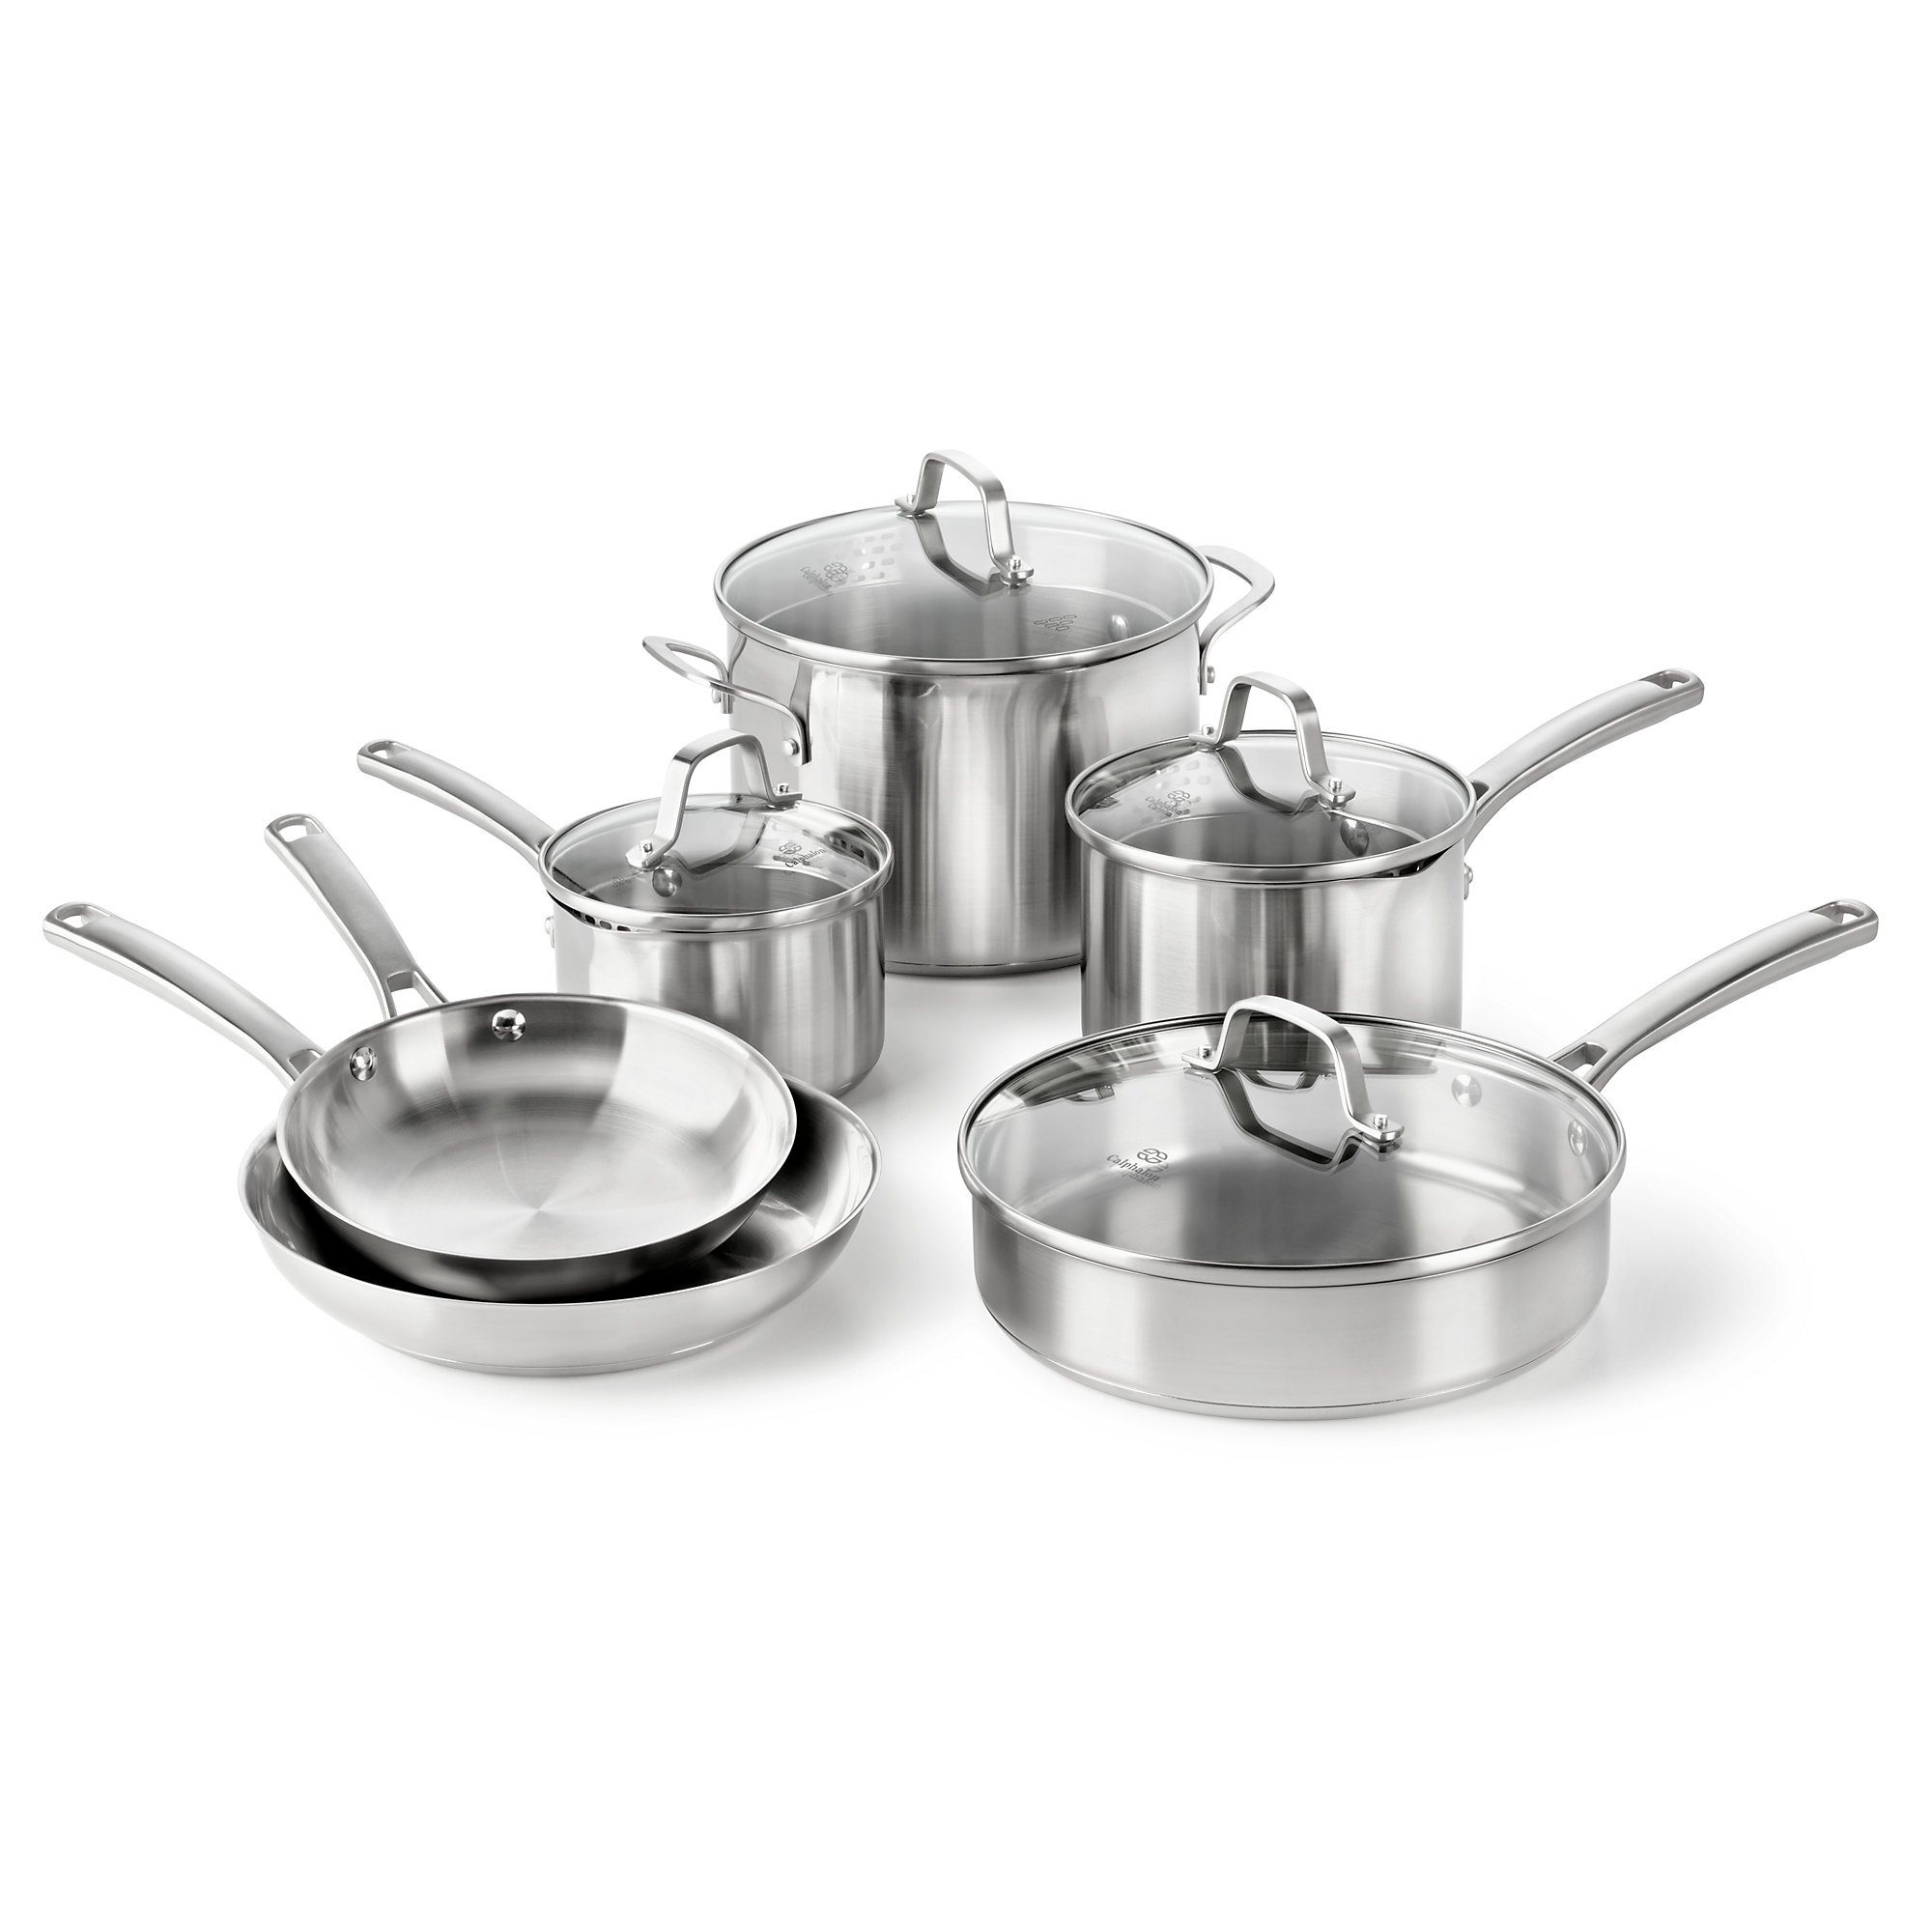 Calphalon Classic Stainless Steel Cookware Set, 10-Piece by Calphalon